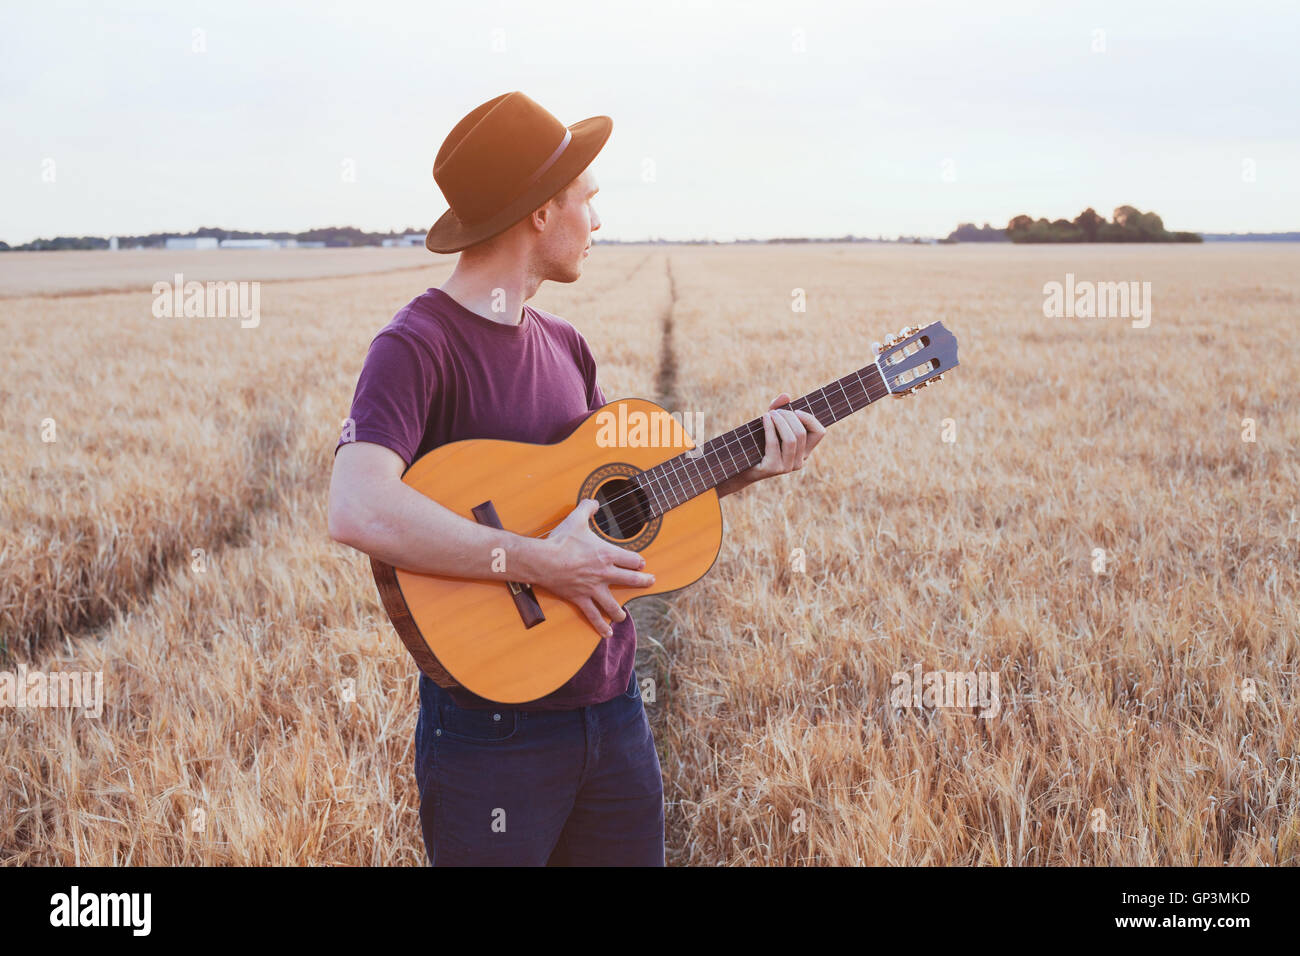 young man playing guitar in the field at sunset, romantic love song - Stock Image